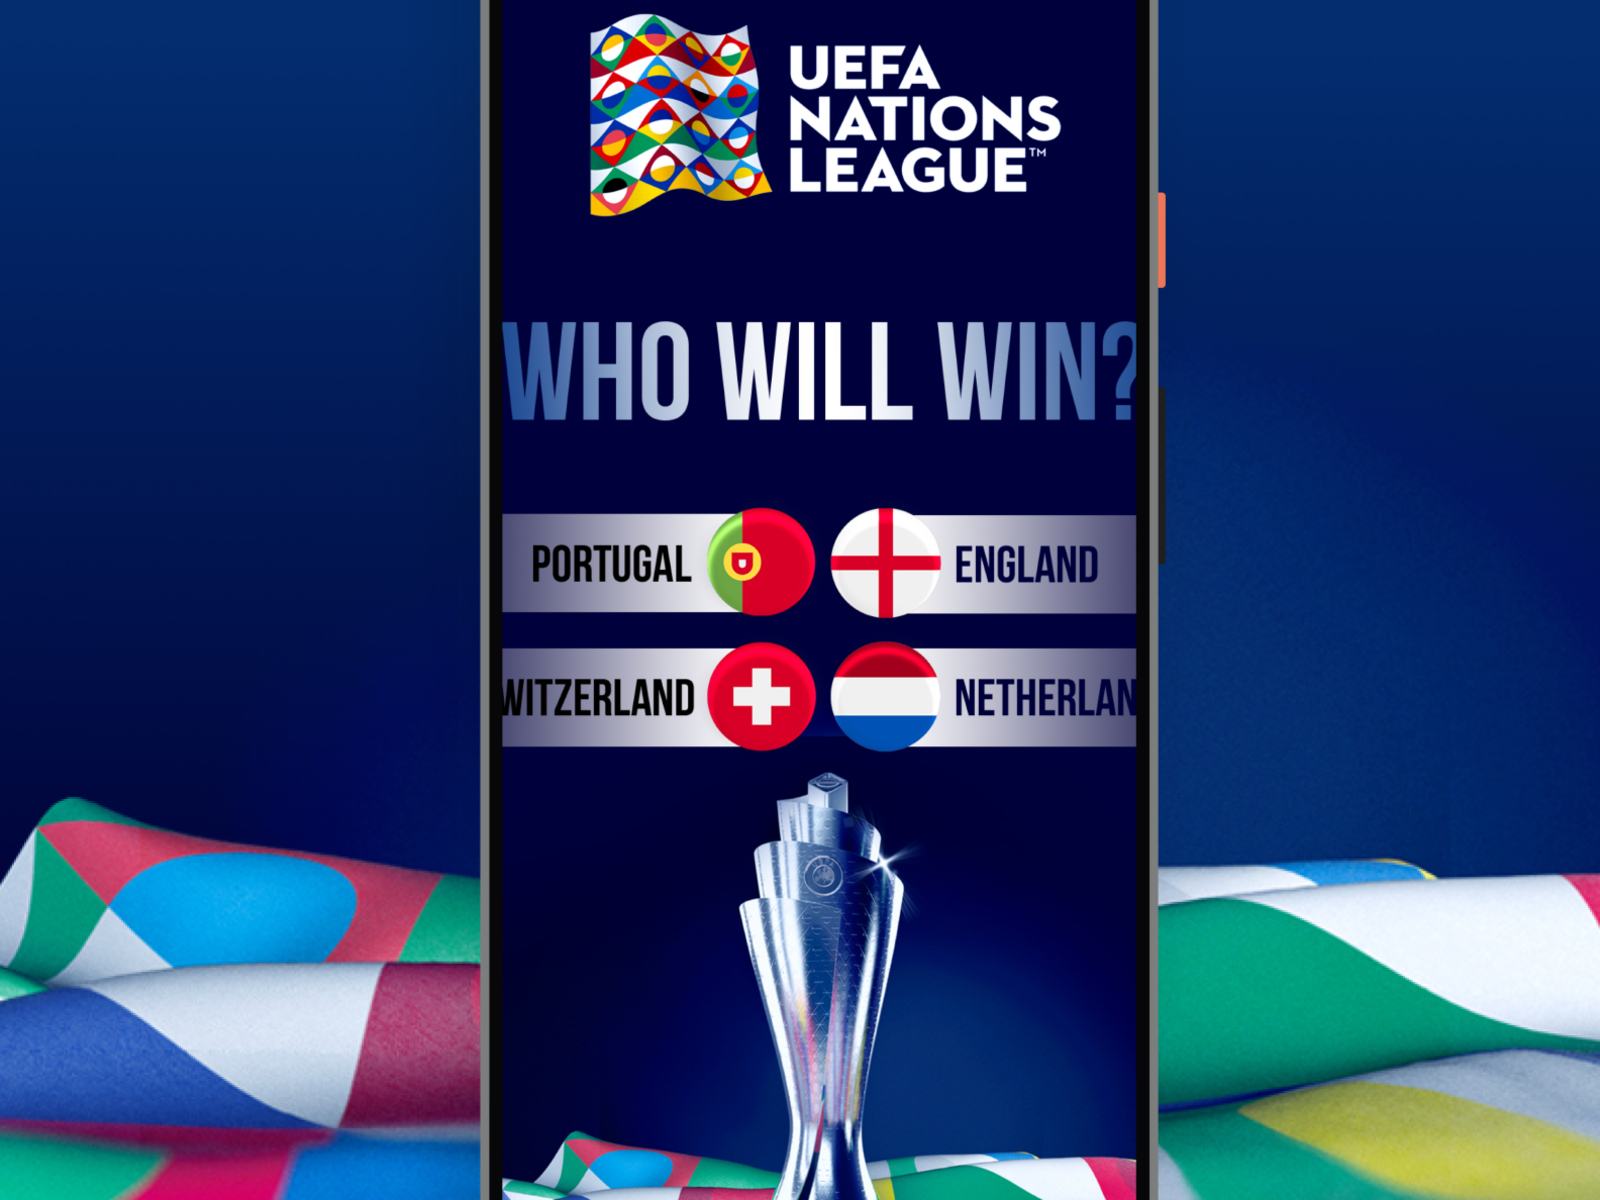 Uefa Nations League By Philippe Bensadon On Dribbble